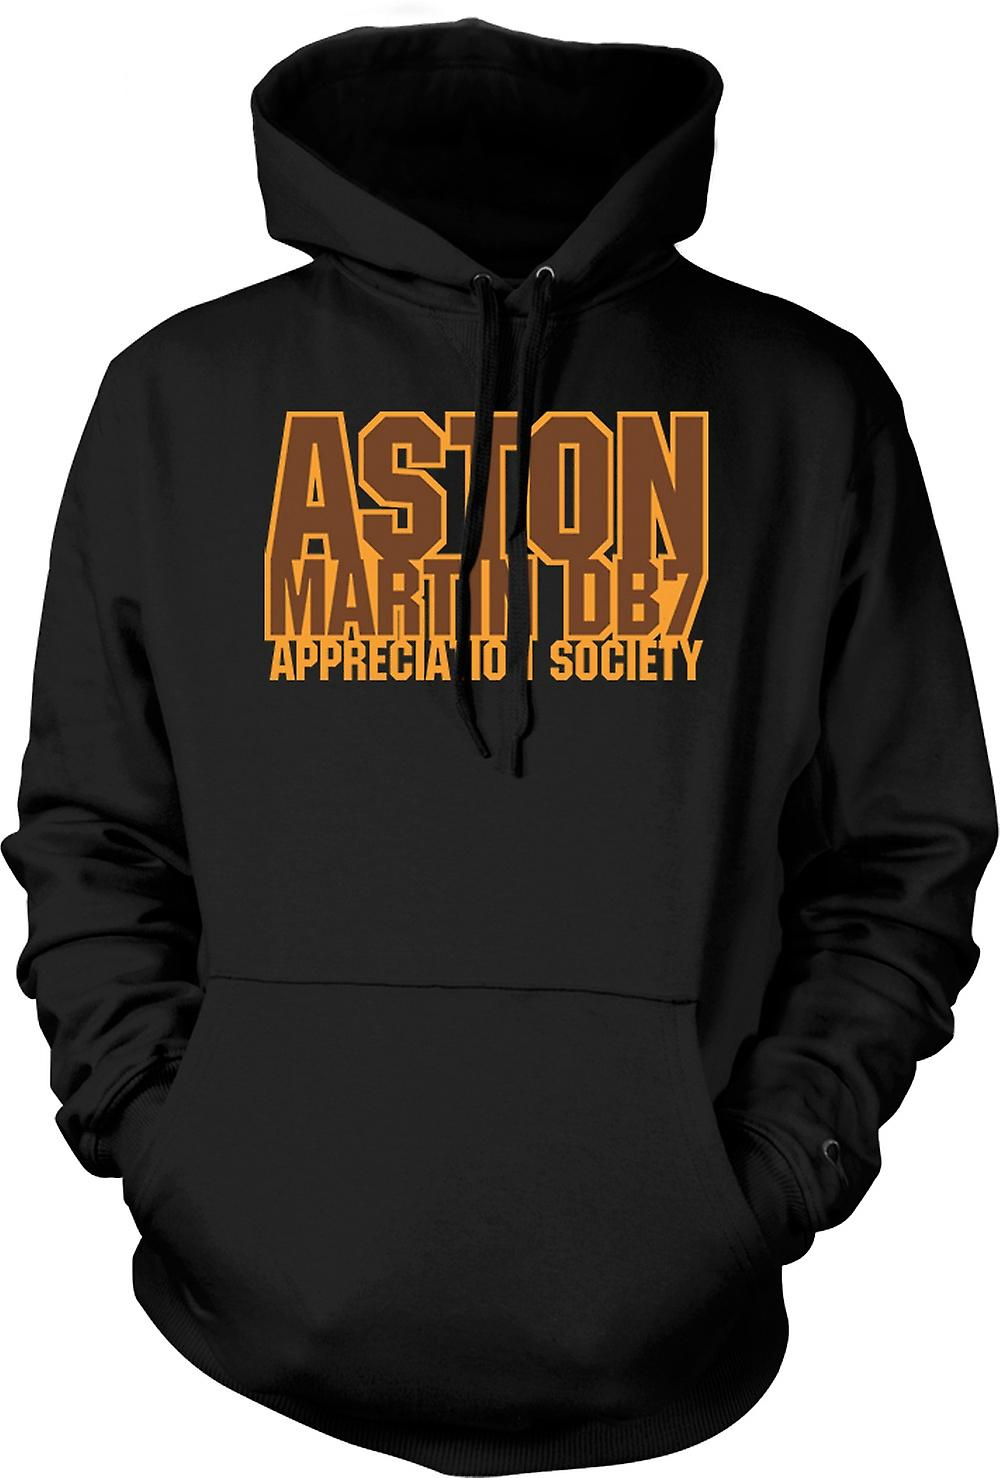 Mens Hoodie - Aston Martin DB7 Appreciation Society